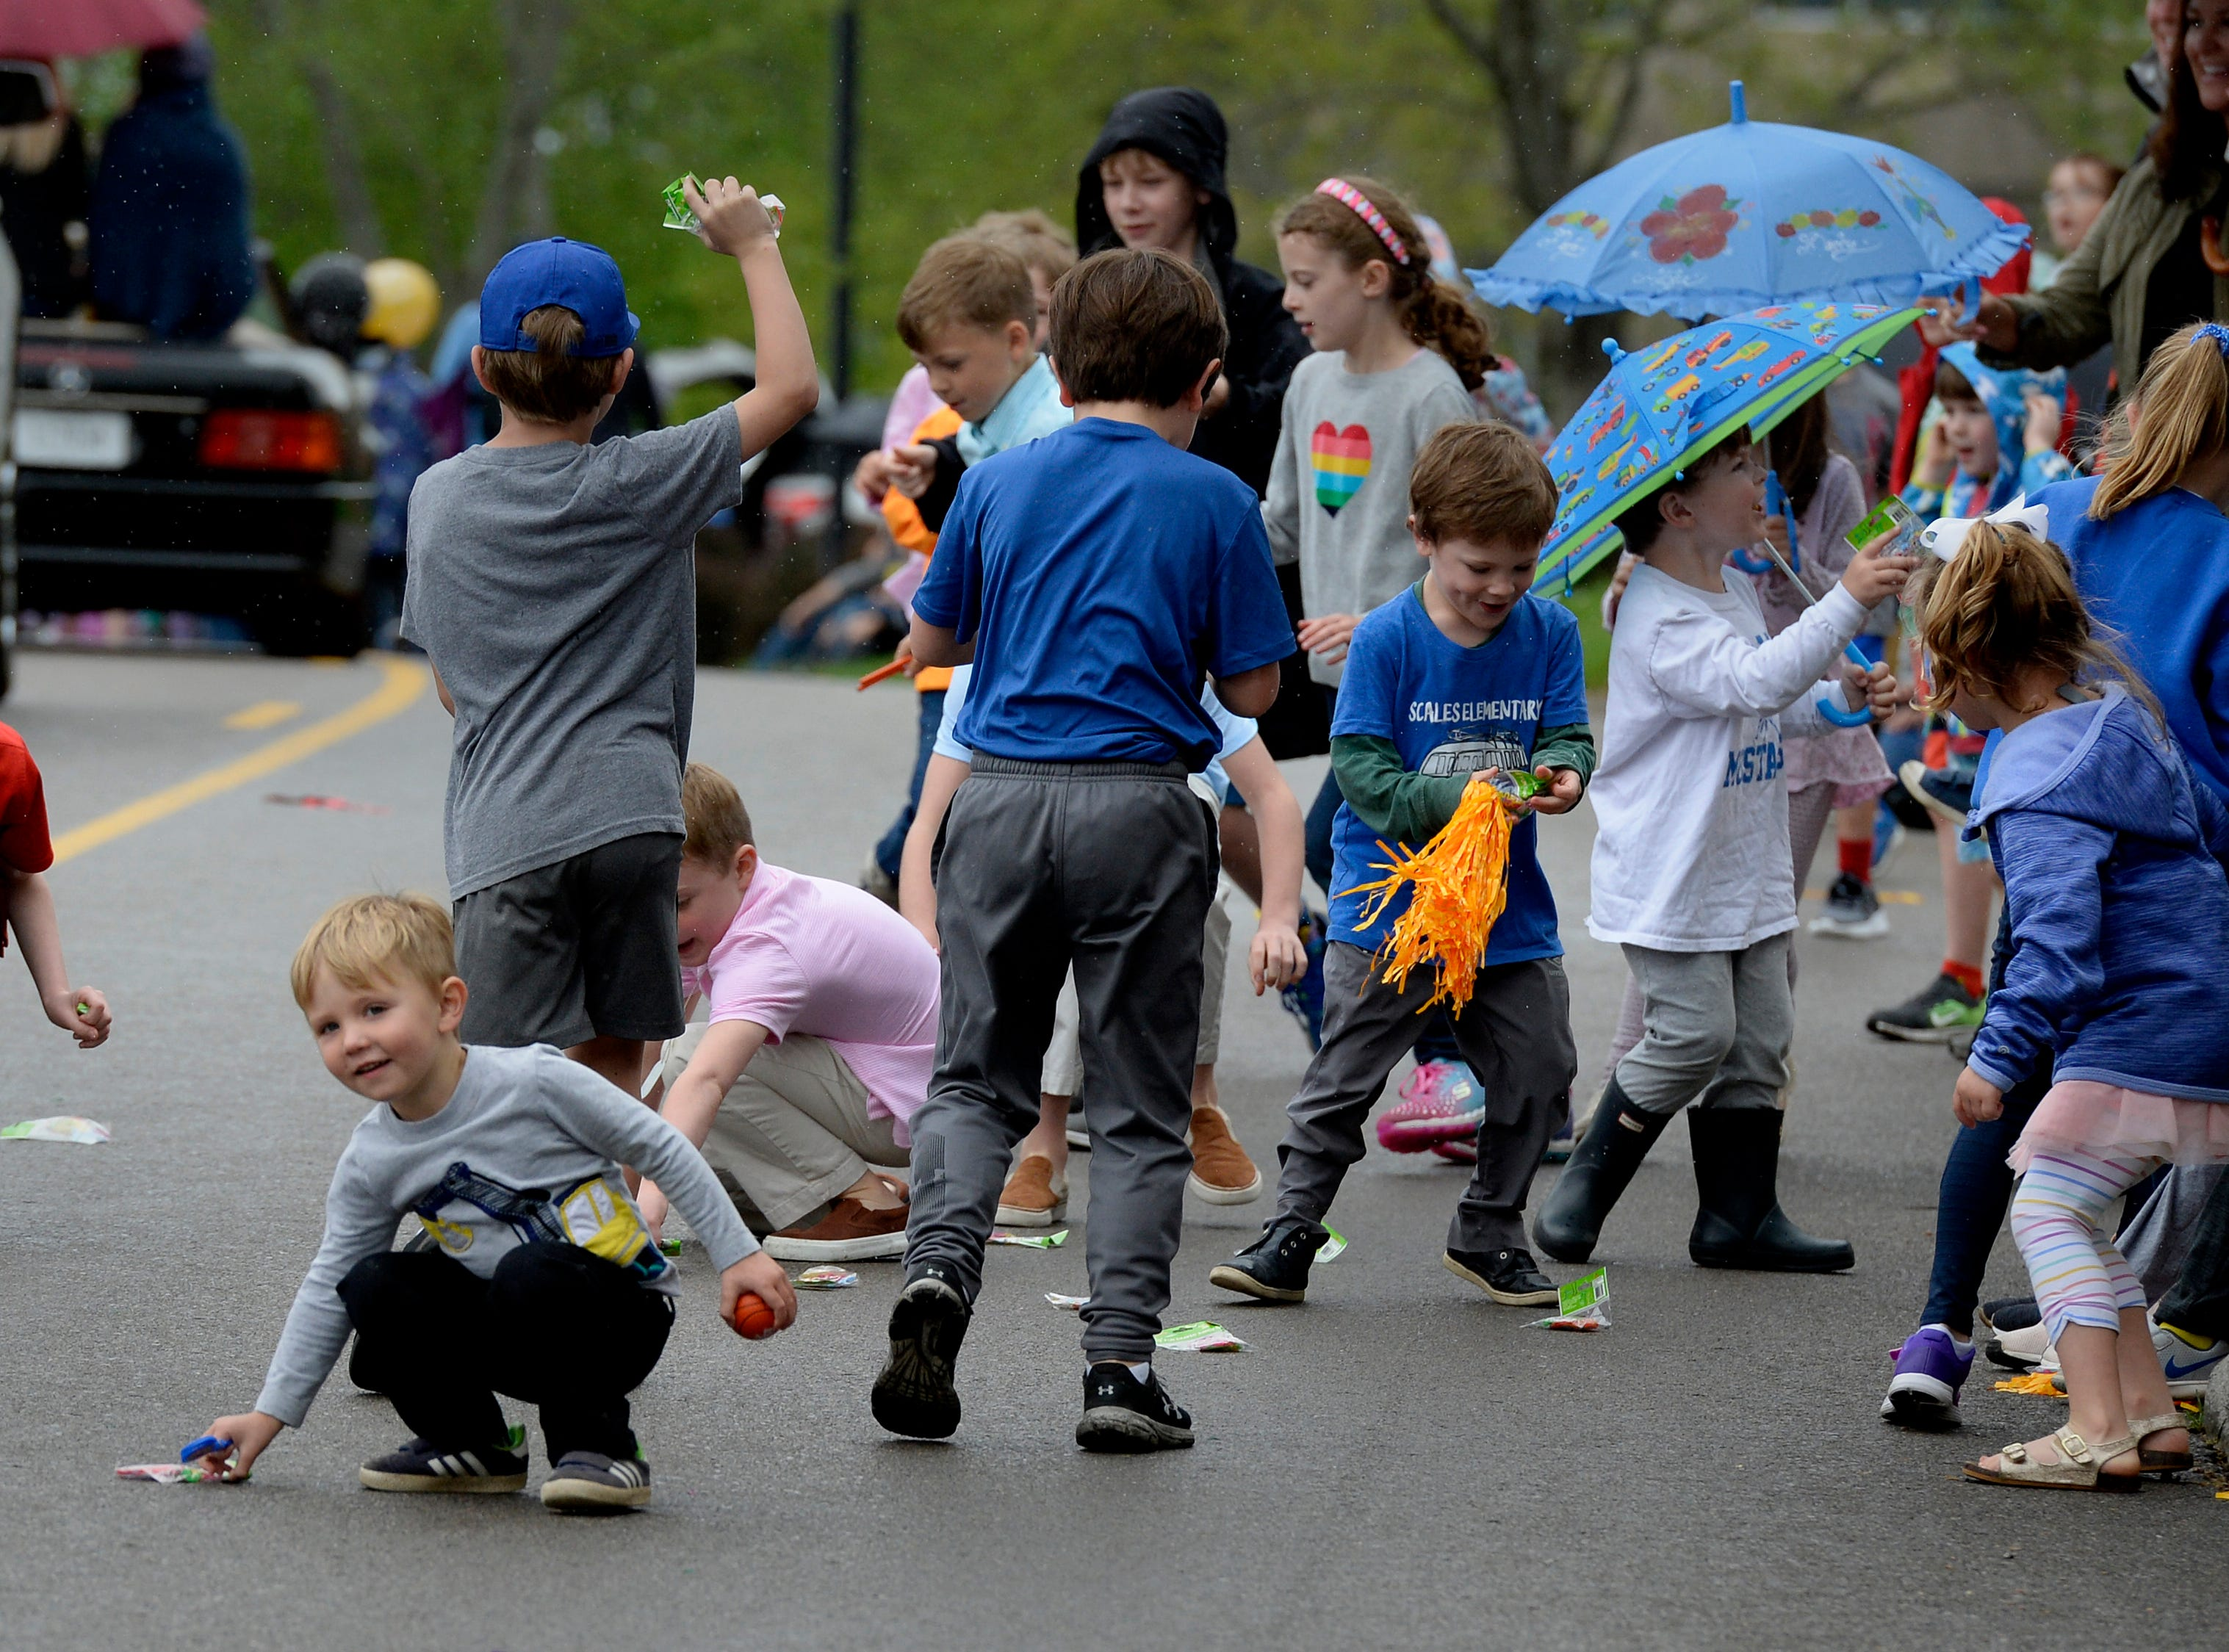 """Children scramble to gather up candy along the parade route during Brentwood's """"A Golden Gallop"""" parade celebrating its 50th year as a community on Saturday, April 13, 2019, in Brentwood, Tenn."""